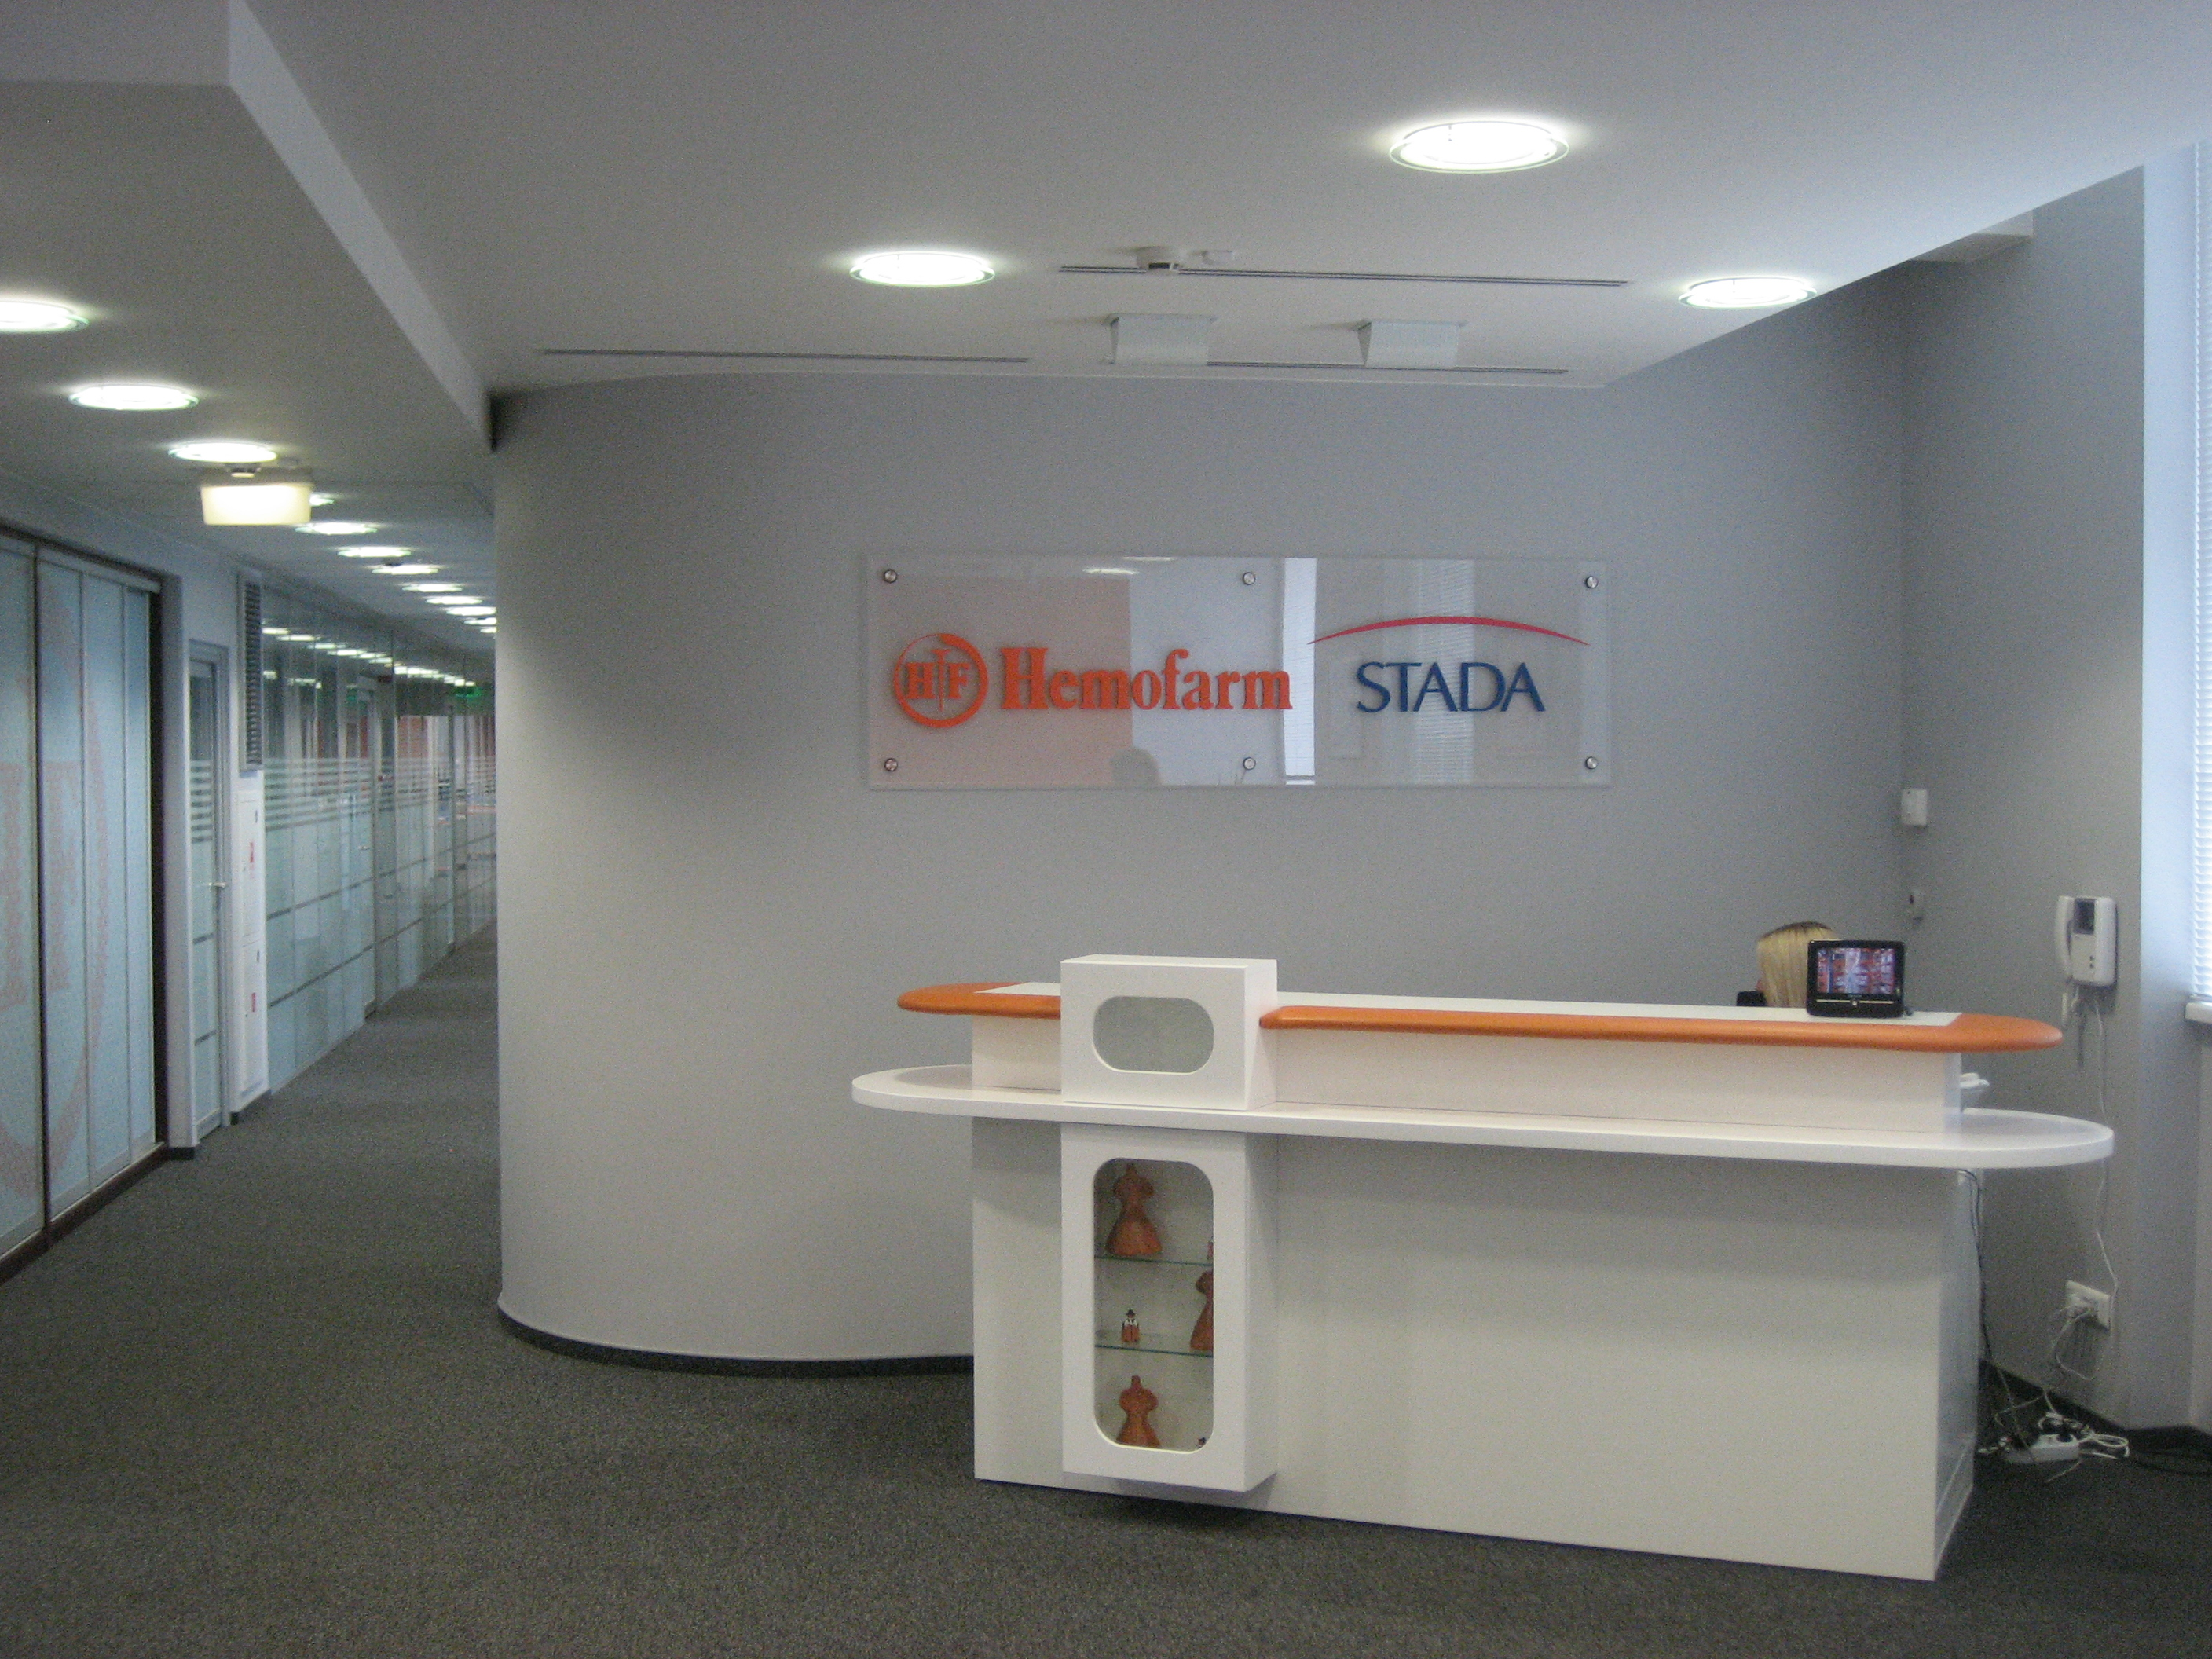 FileHemofarm Moscow Office Reception 2010jpg Wikimedia